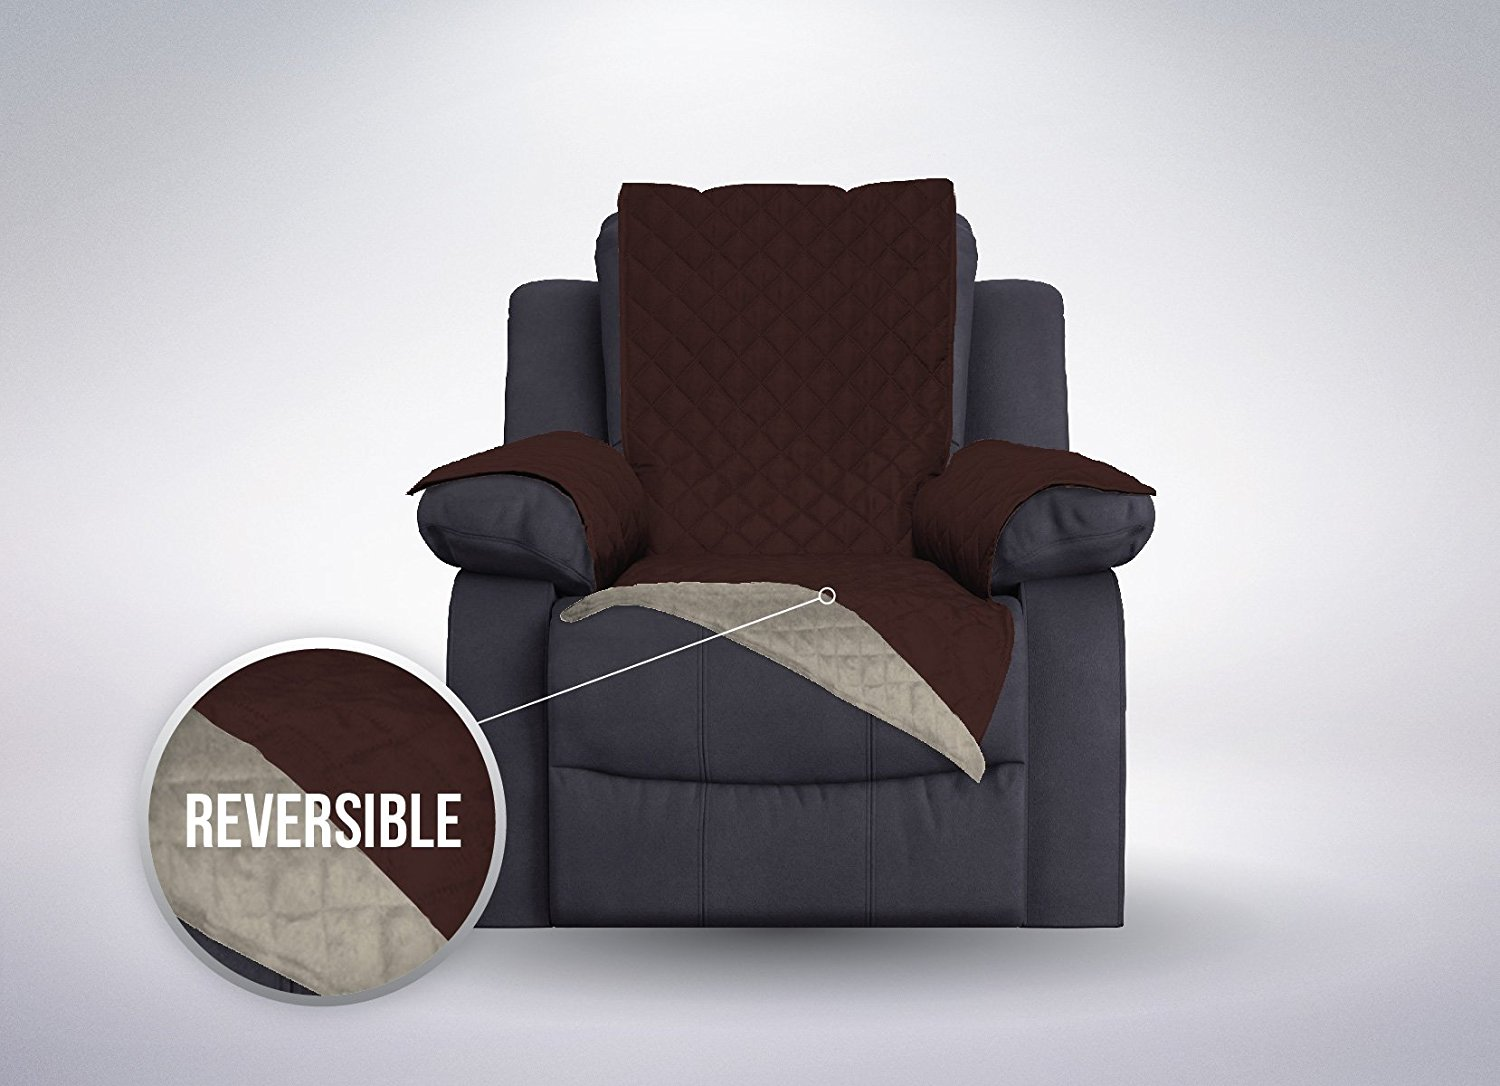 ... original brands of slipcovers designed specifically for La-Z-Boy products. Available in a variety of sizes to suit even the largest of home recliners ... & Lazyboy Recliners Review and Guide Online islam-shia.org